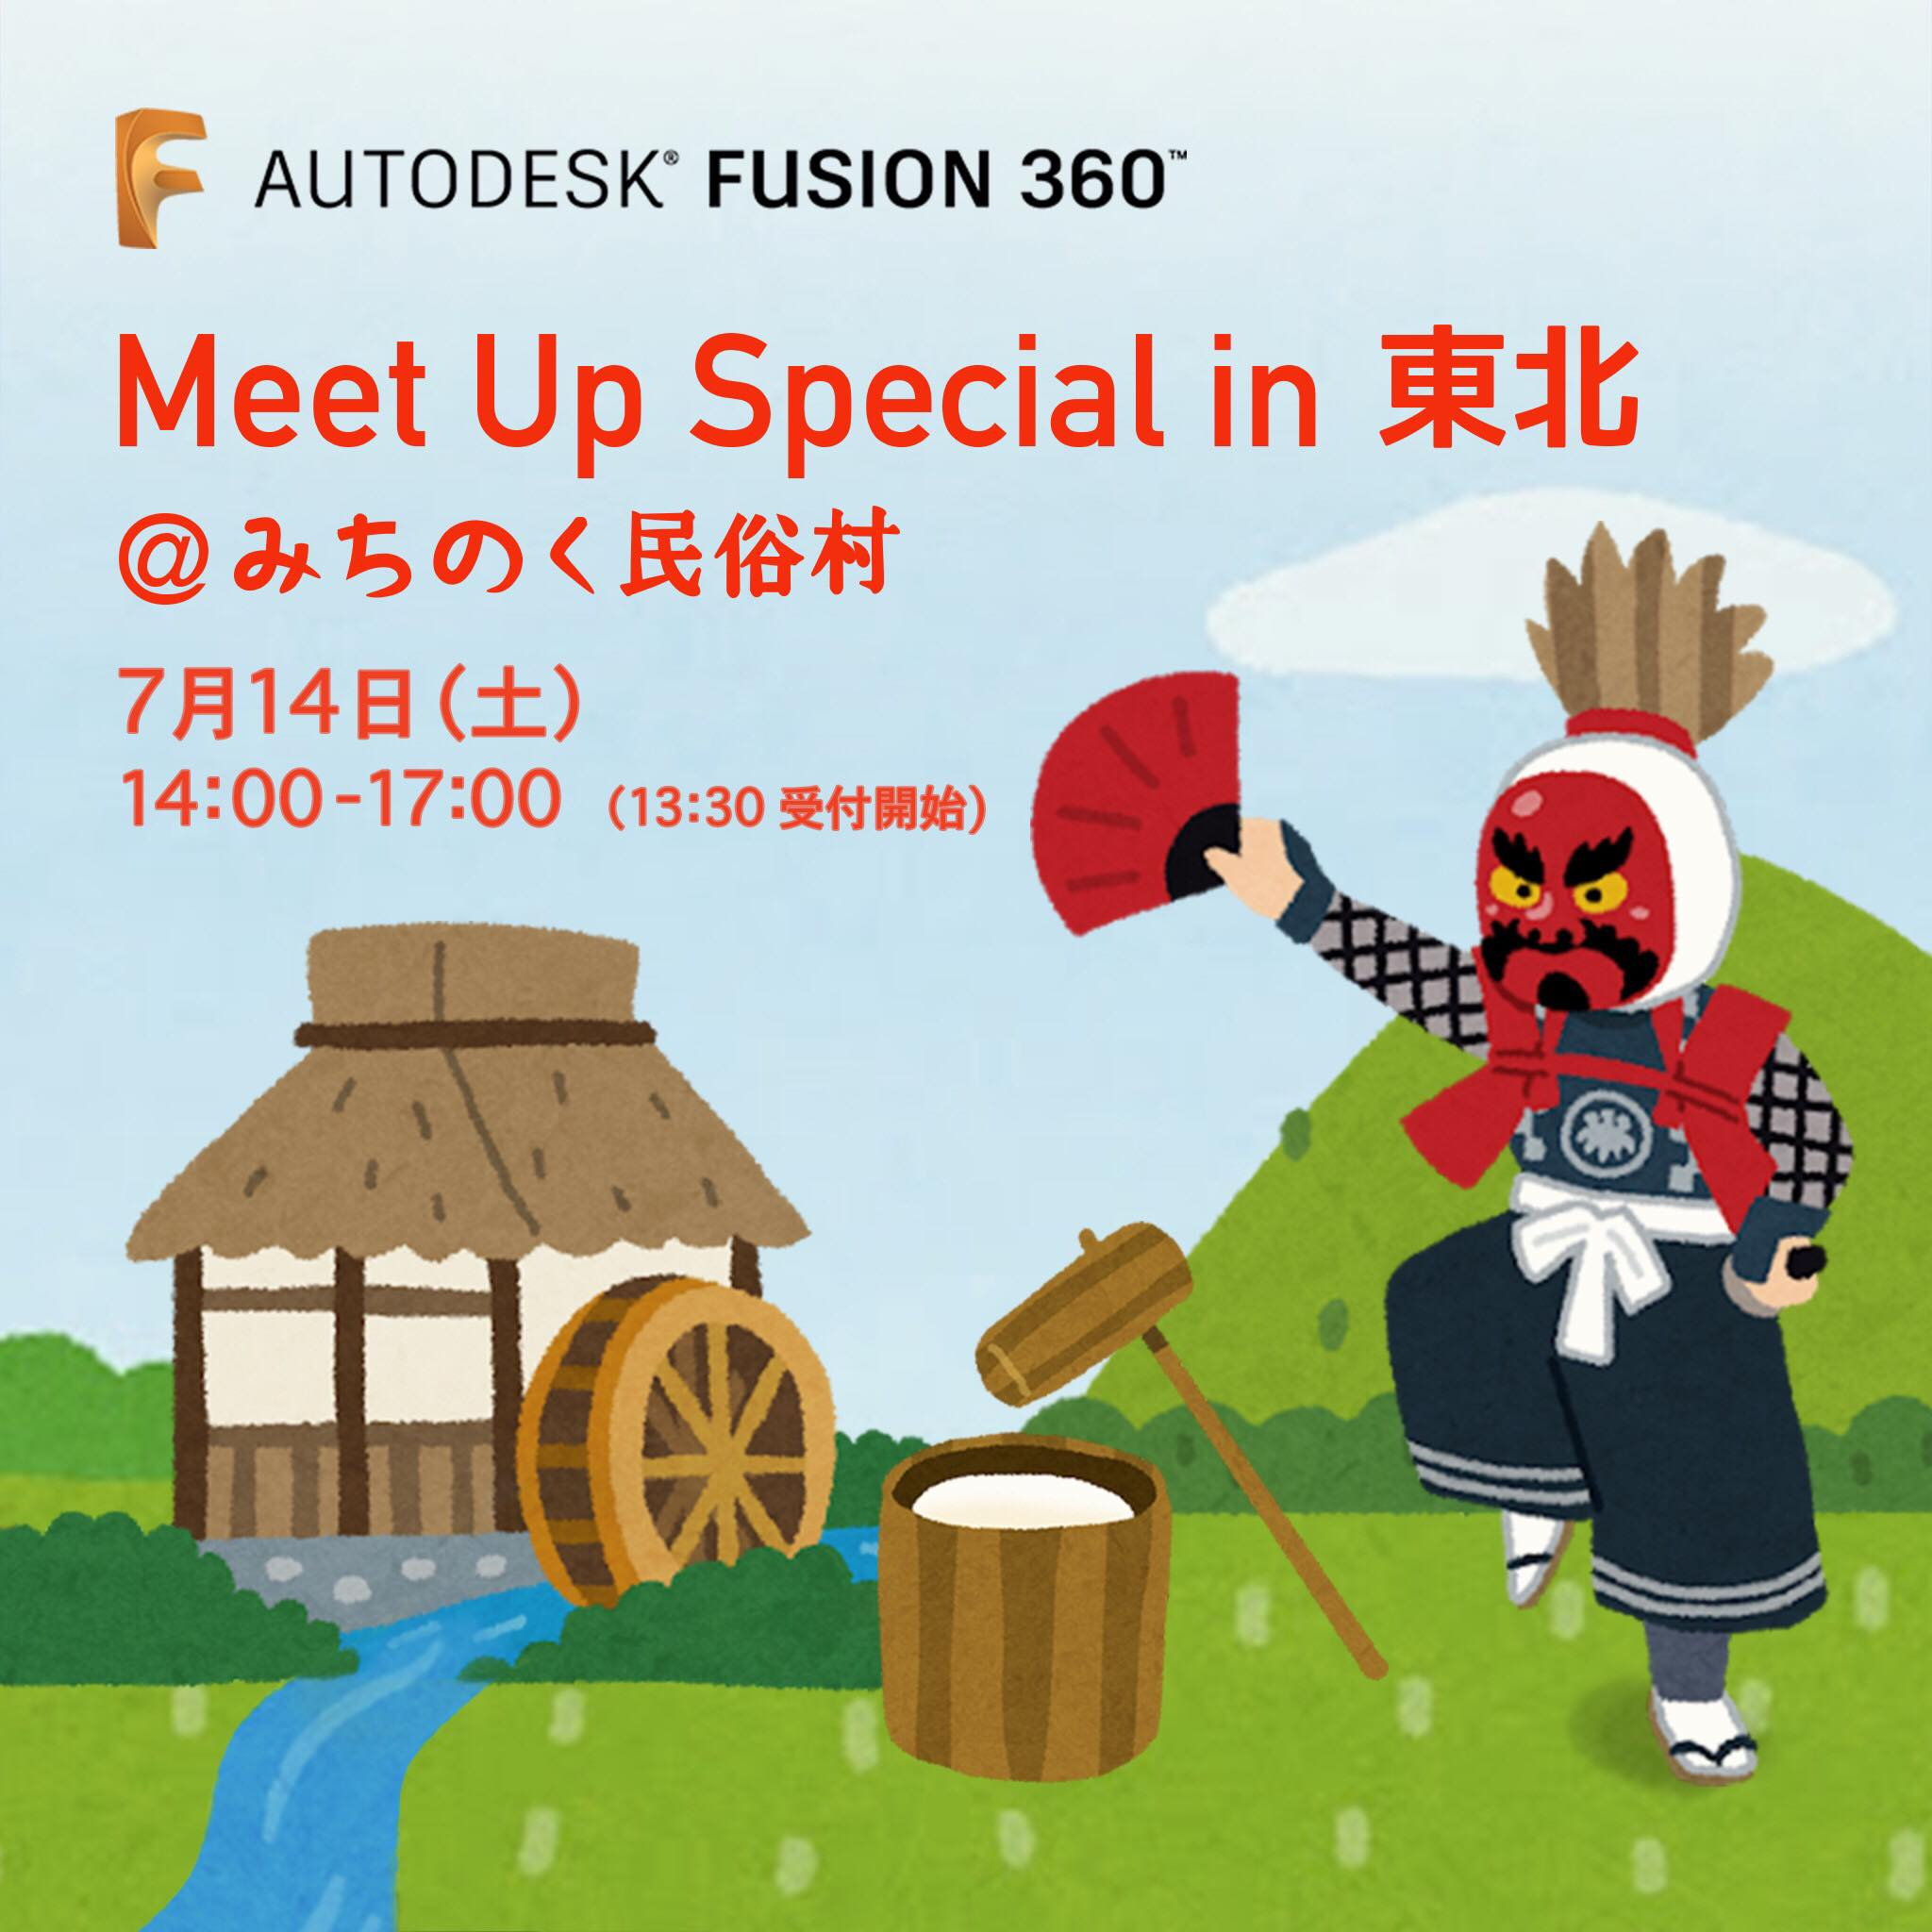 Fusion 360 Meetup Special in 東北 開催決定!